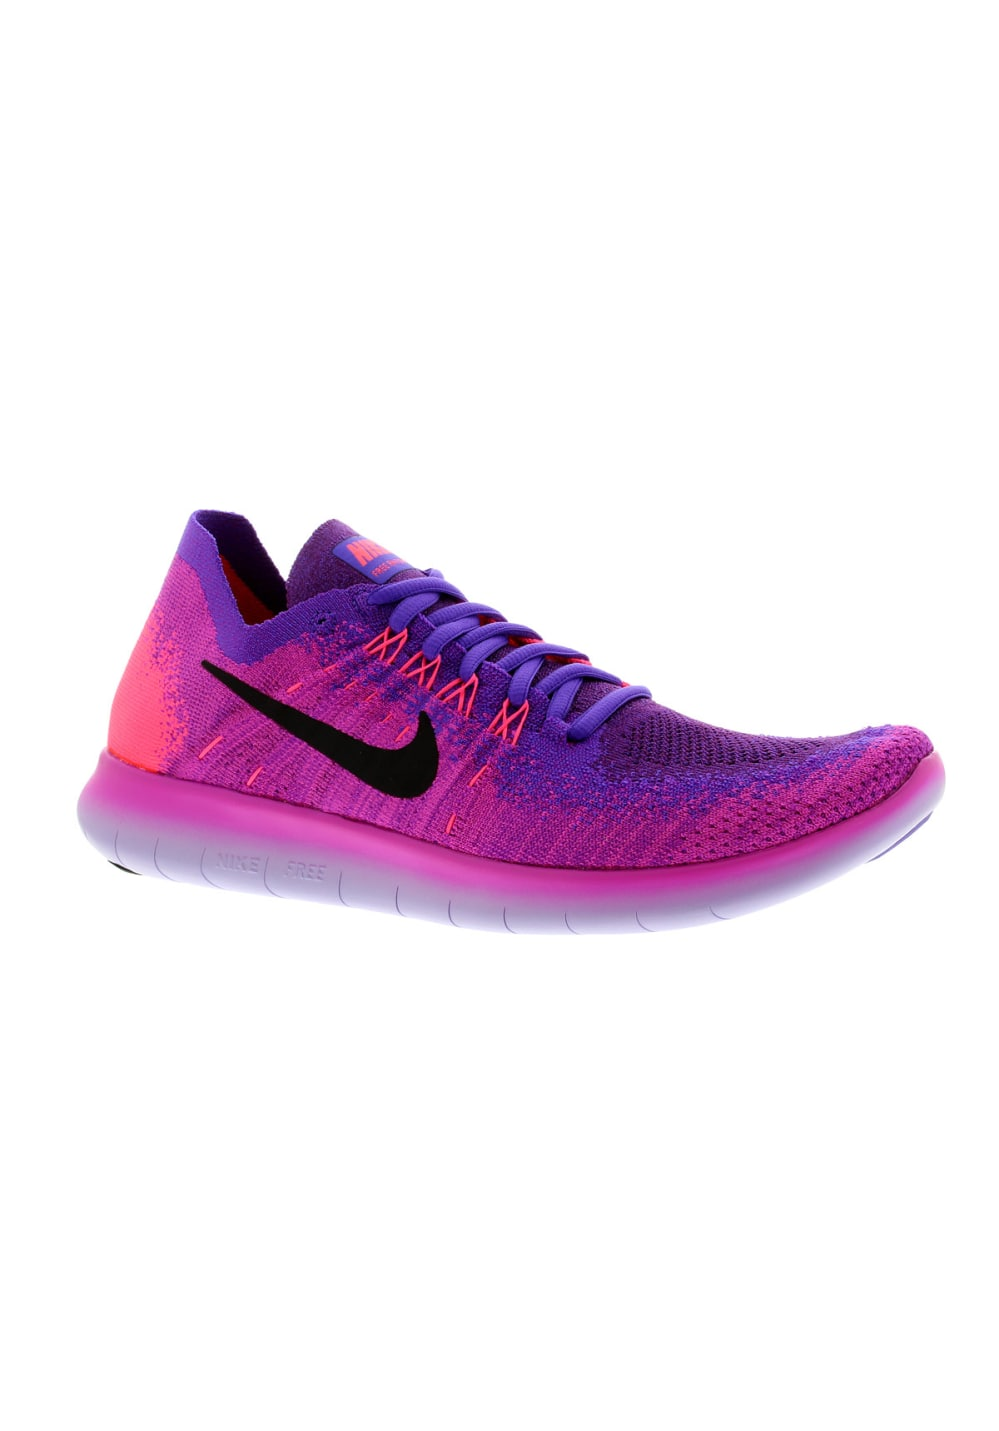 save off aaa41 31d52 Nike Free RN Flyknit 2017 - Running shoes for Women - Purple